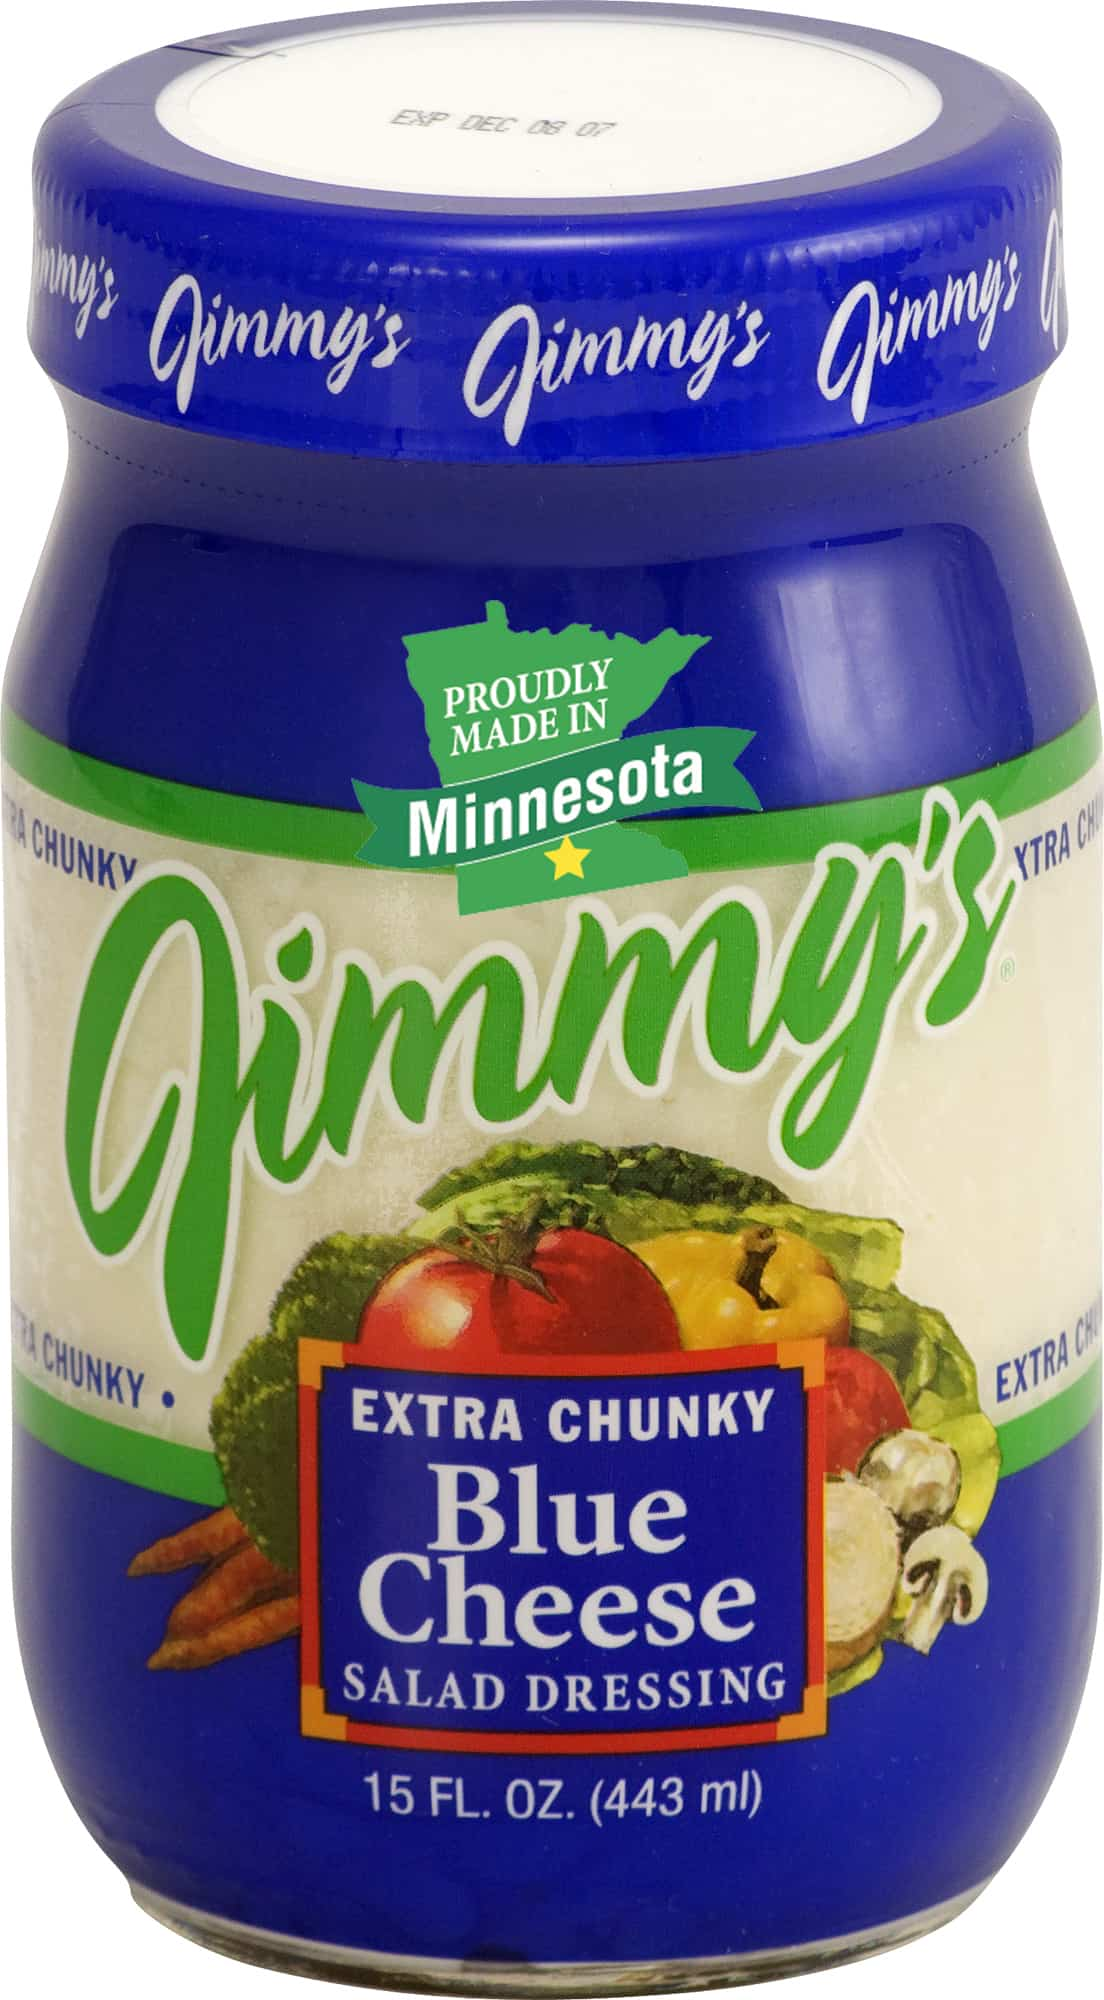 JImmy's Extra Chunky Blue Cheese Dressing